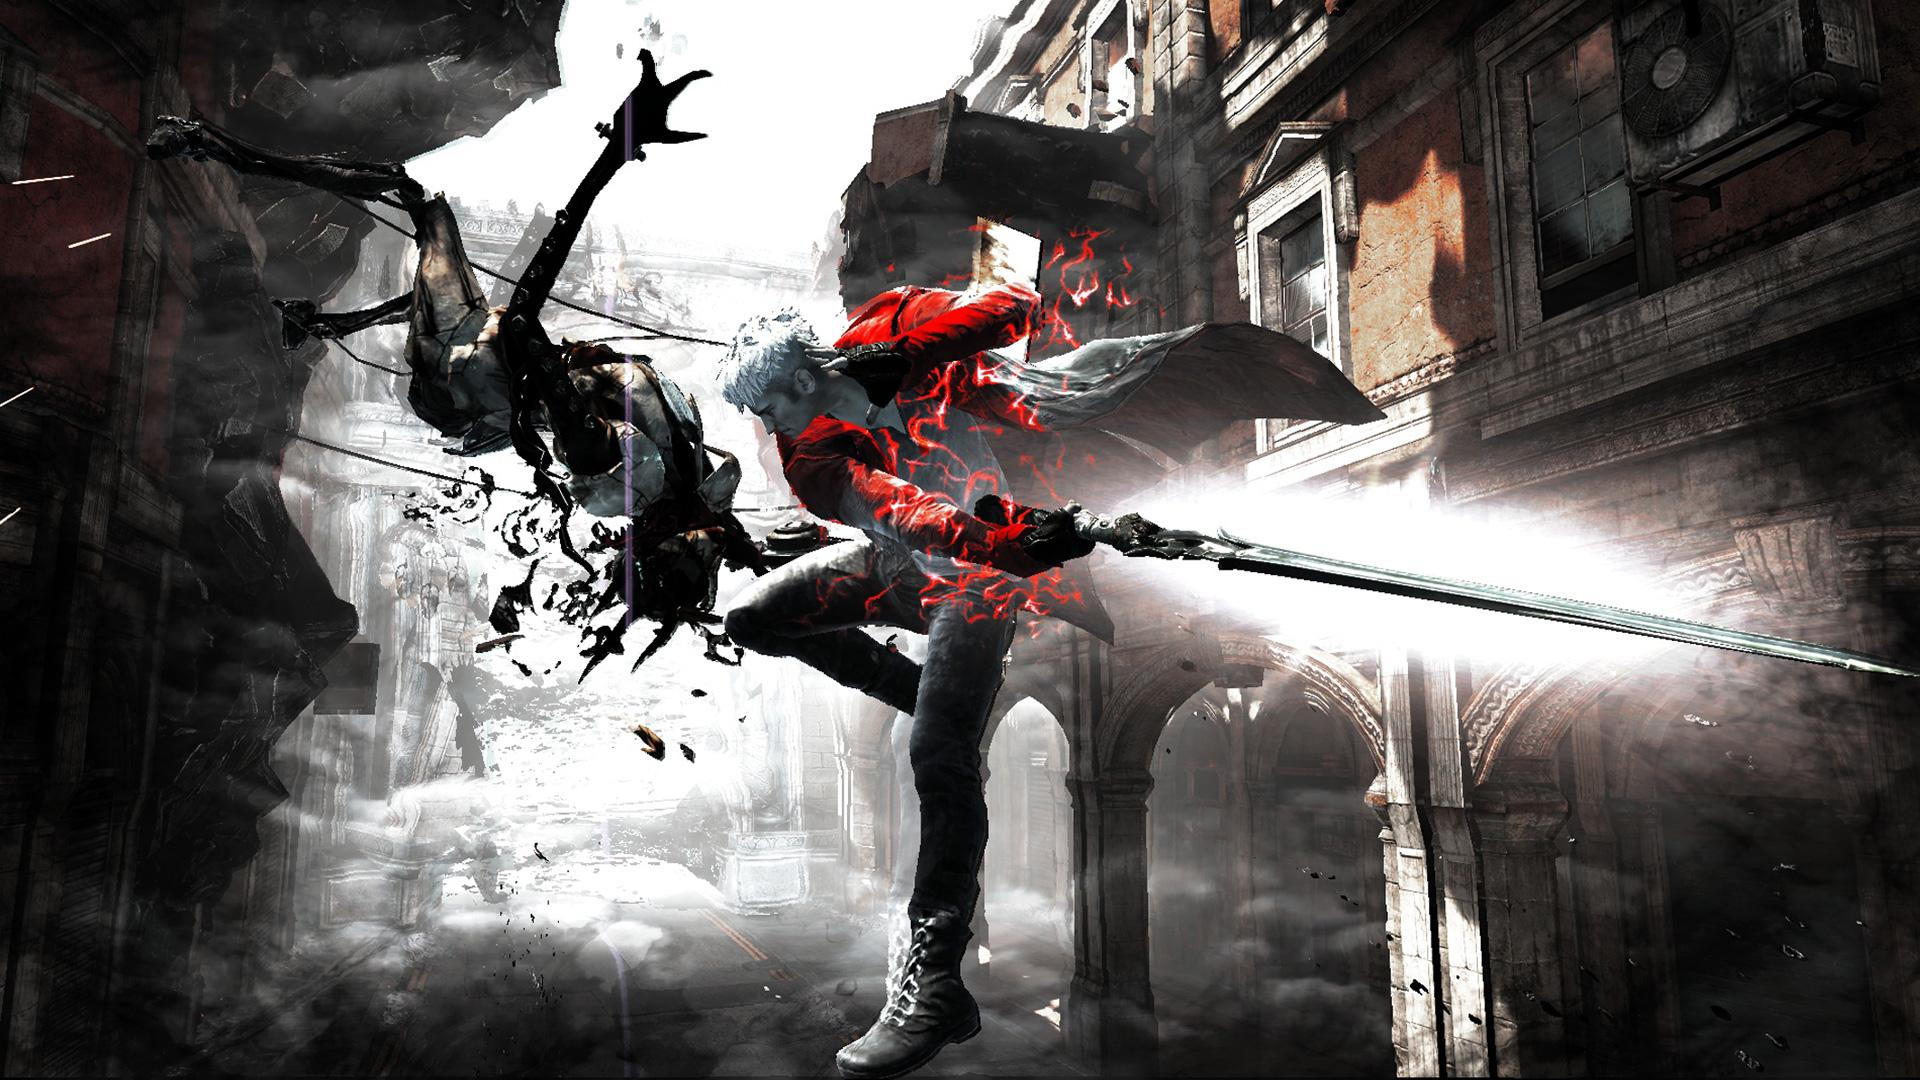 Devil may cry game full hd desktop wallpapers 1080p - Devil may cry hd pics ...